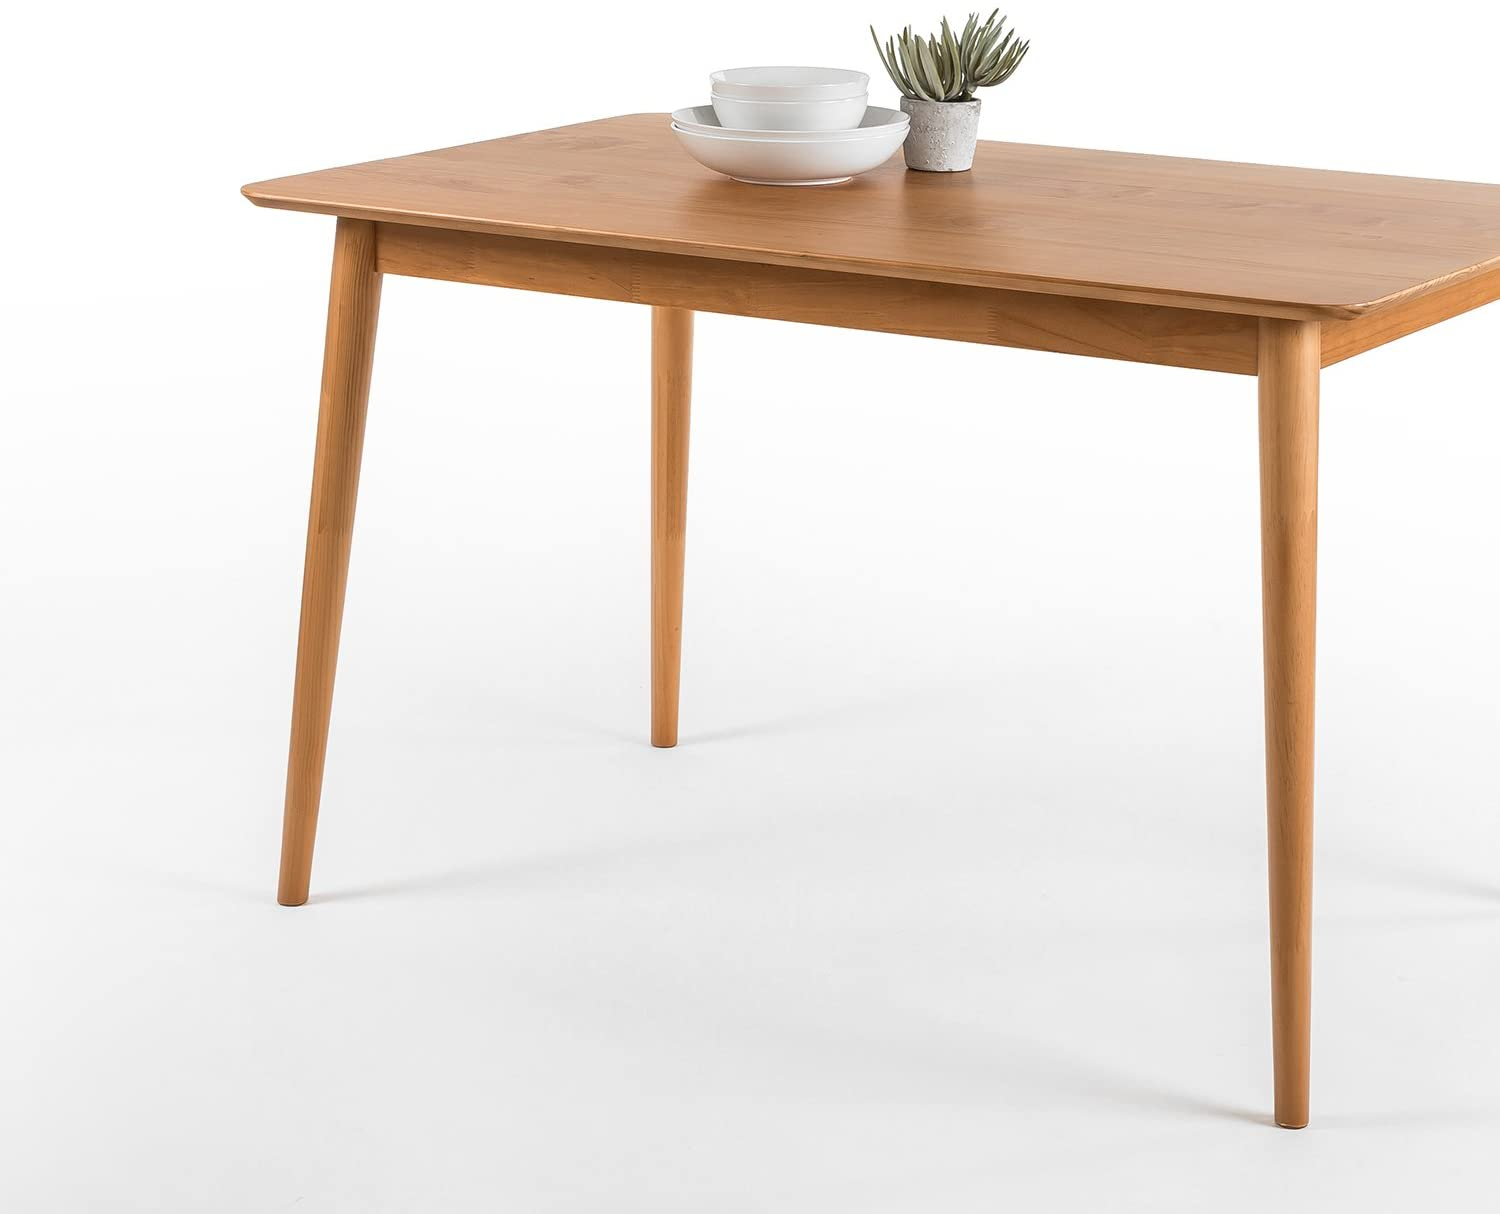 Zinus Jen 3 Inch Dining Table, Natural